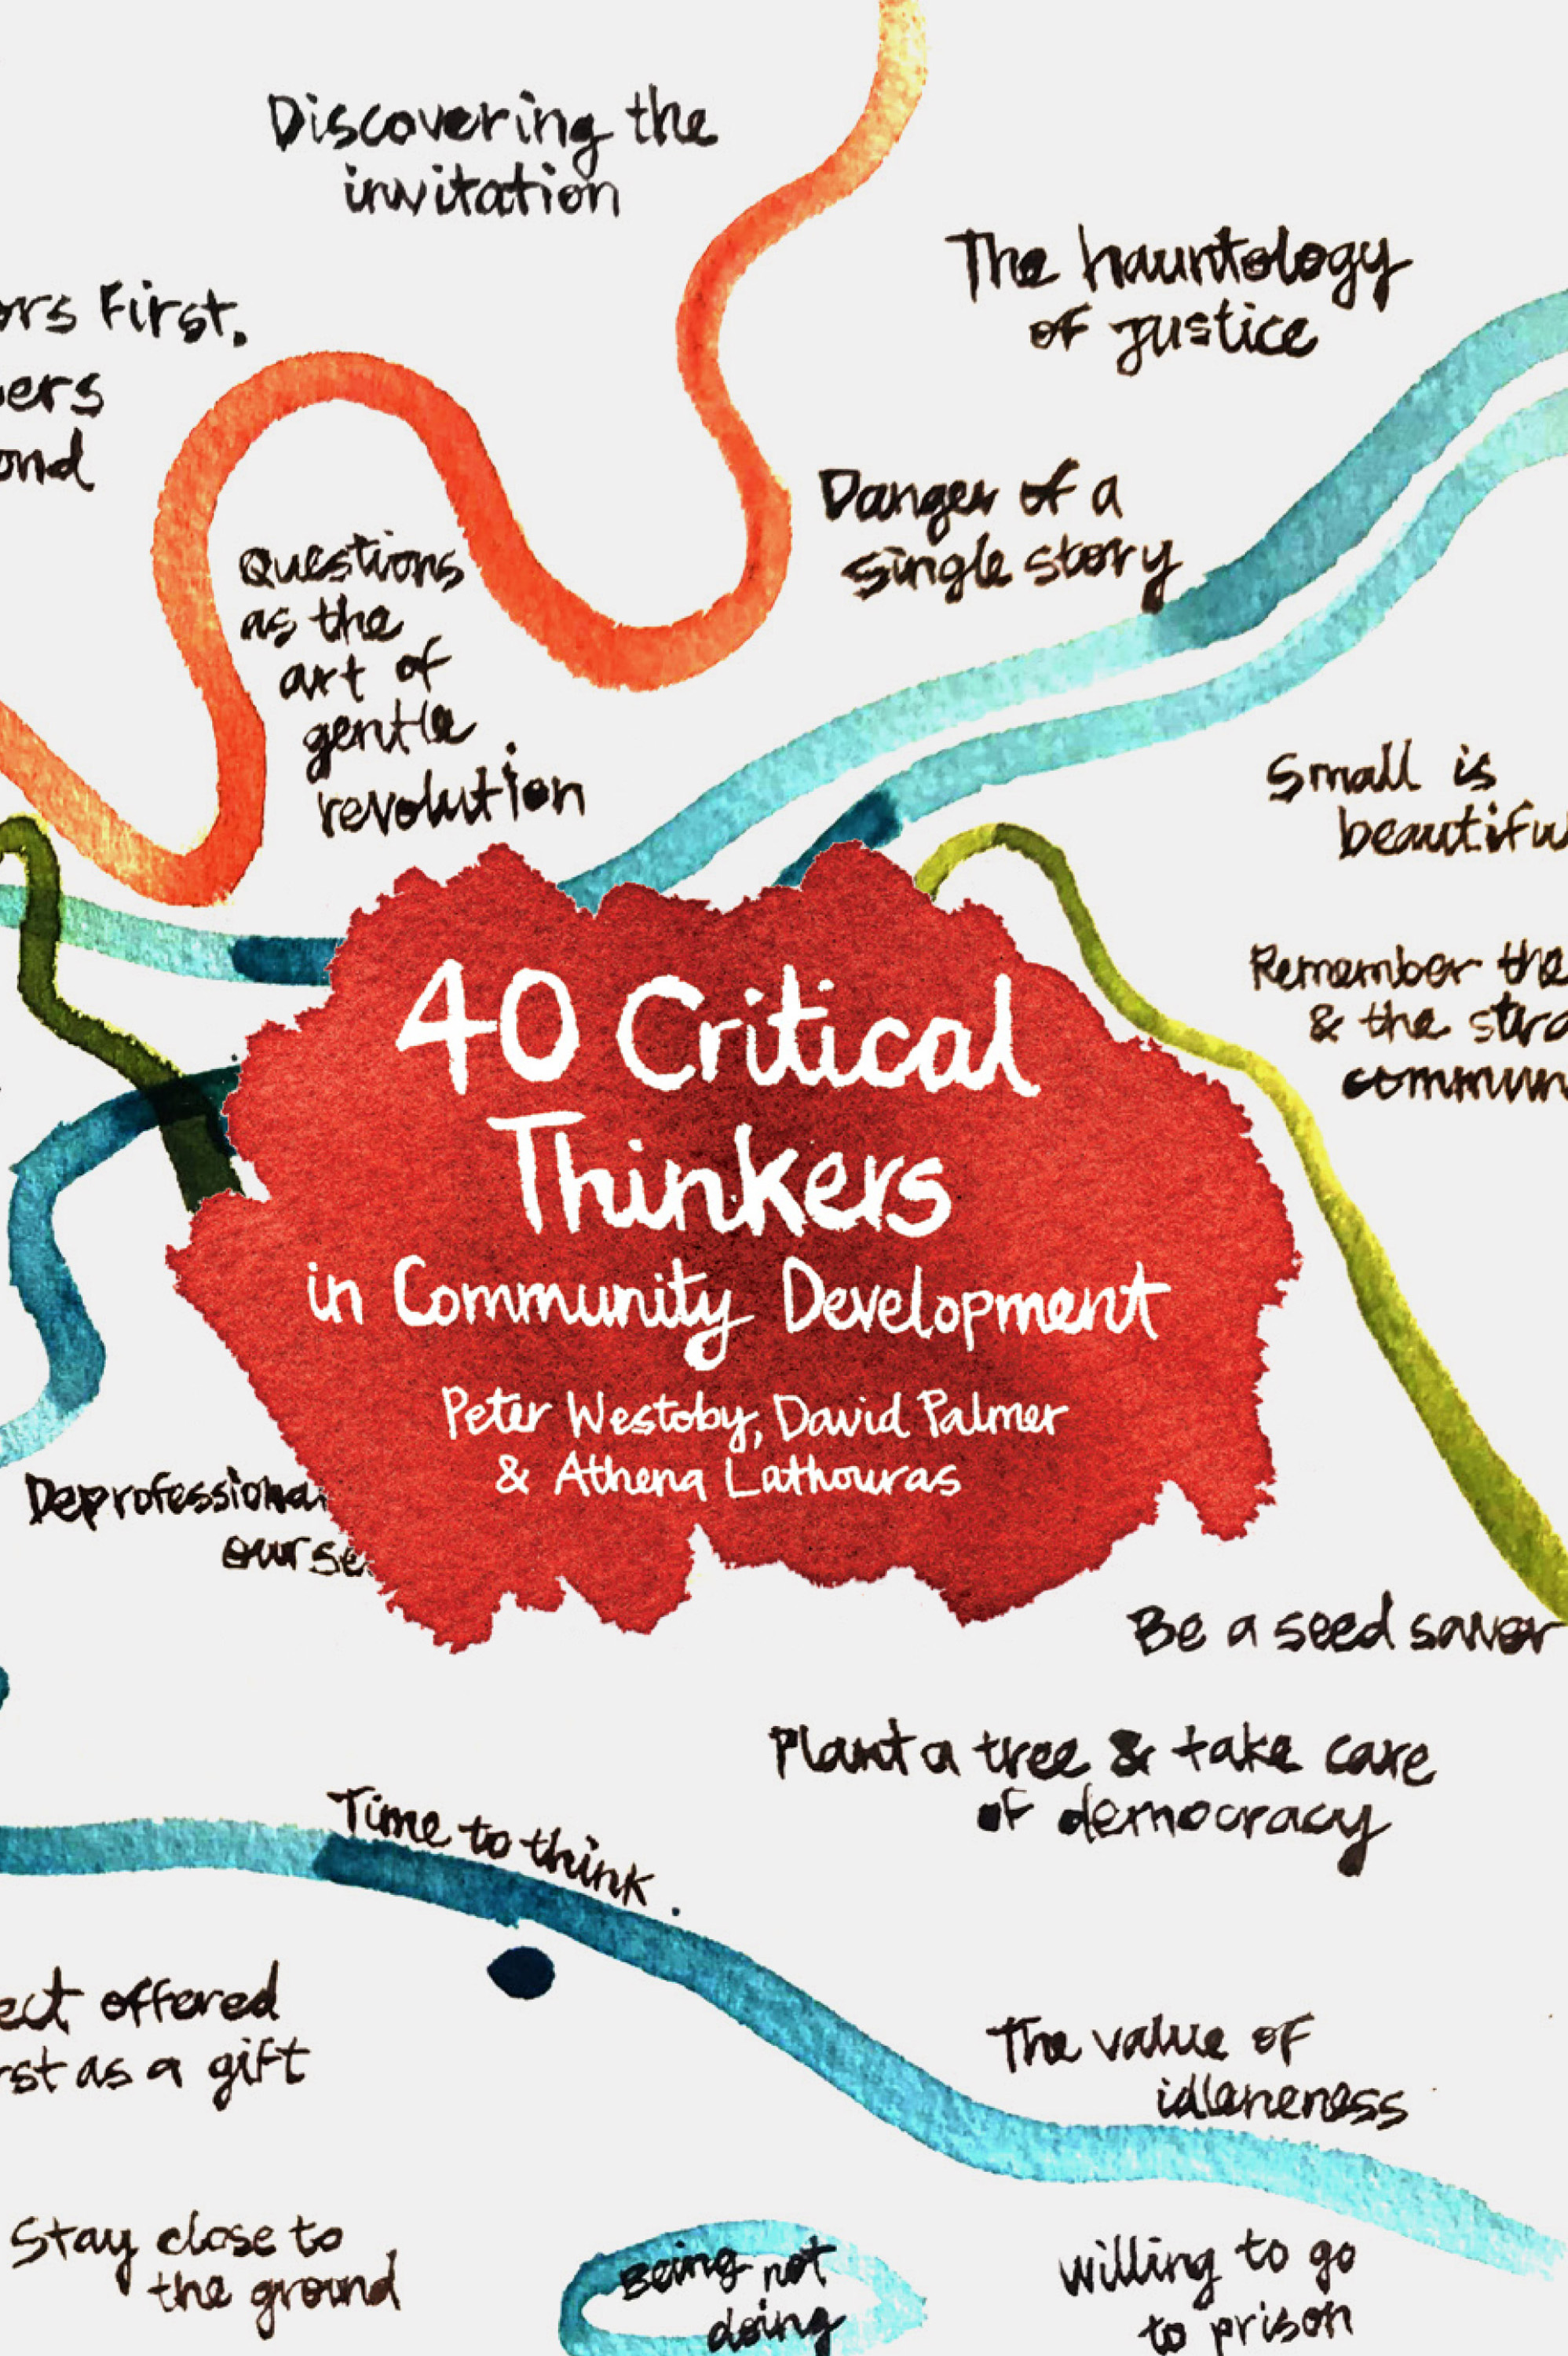 40 Critical Thinkers in Community Development